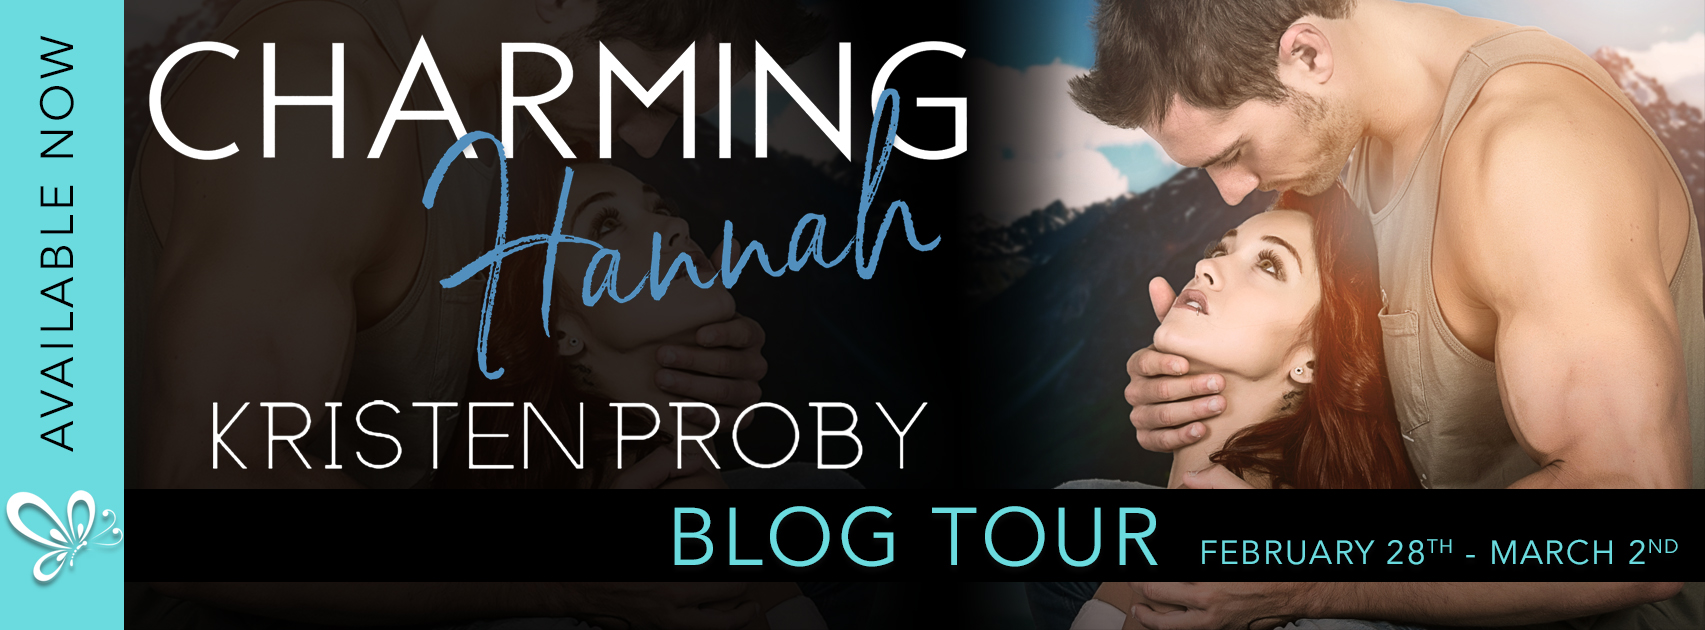 Blog Tour:  Charming Hannah by Kristen Proby